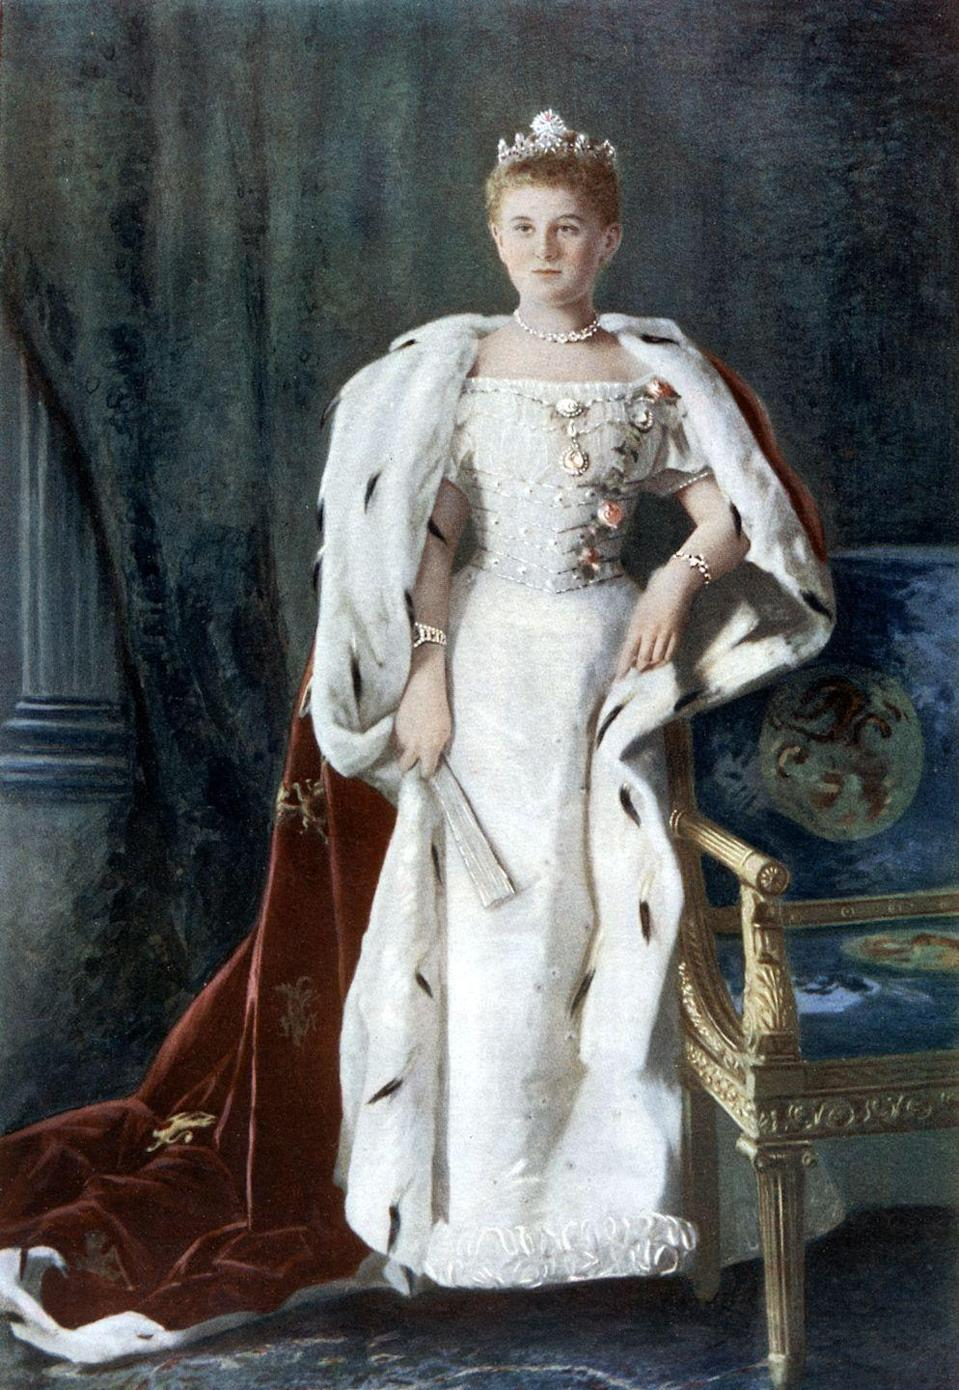 <p>Royal fashion remained formal in Europe, although it took cues from the trends of the day. Off-the-shoulder dresses were common, and a long, broad bodice was back. </p>